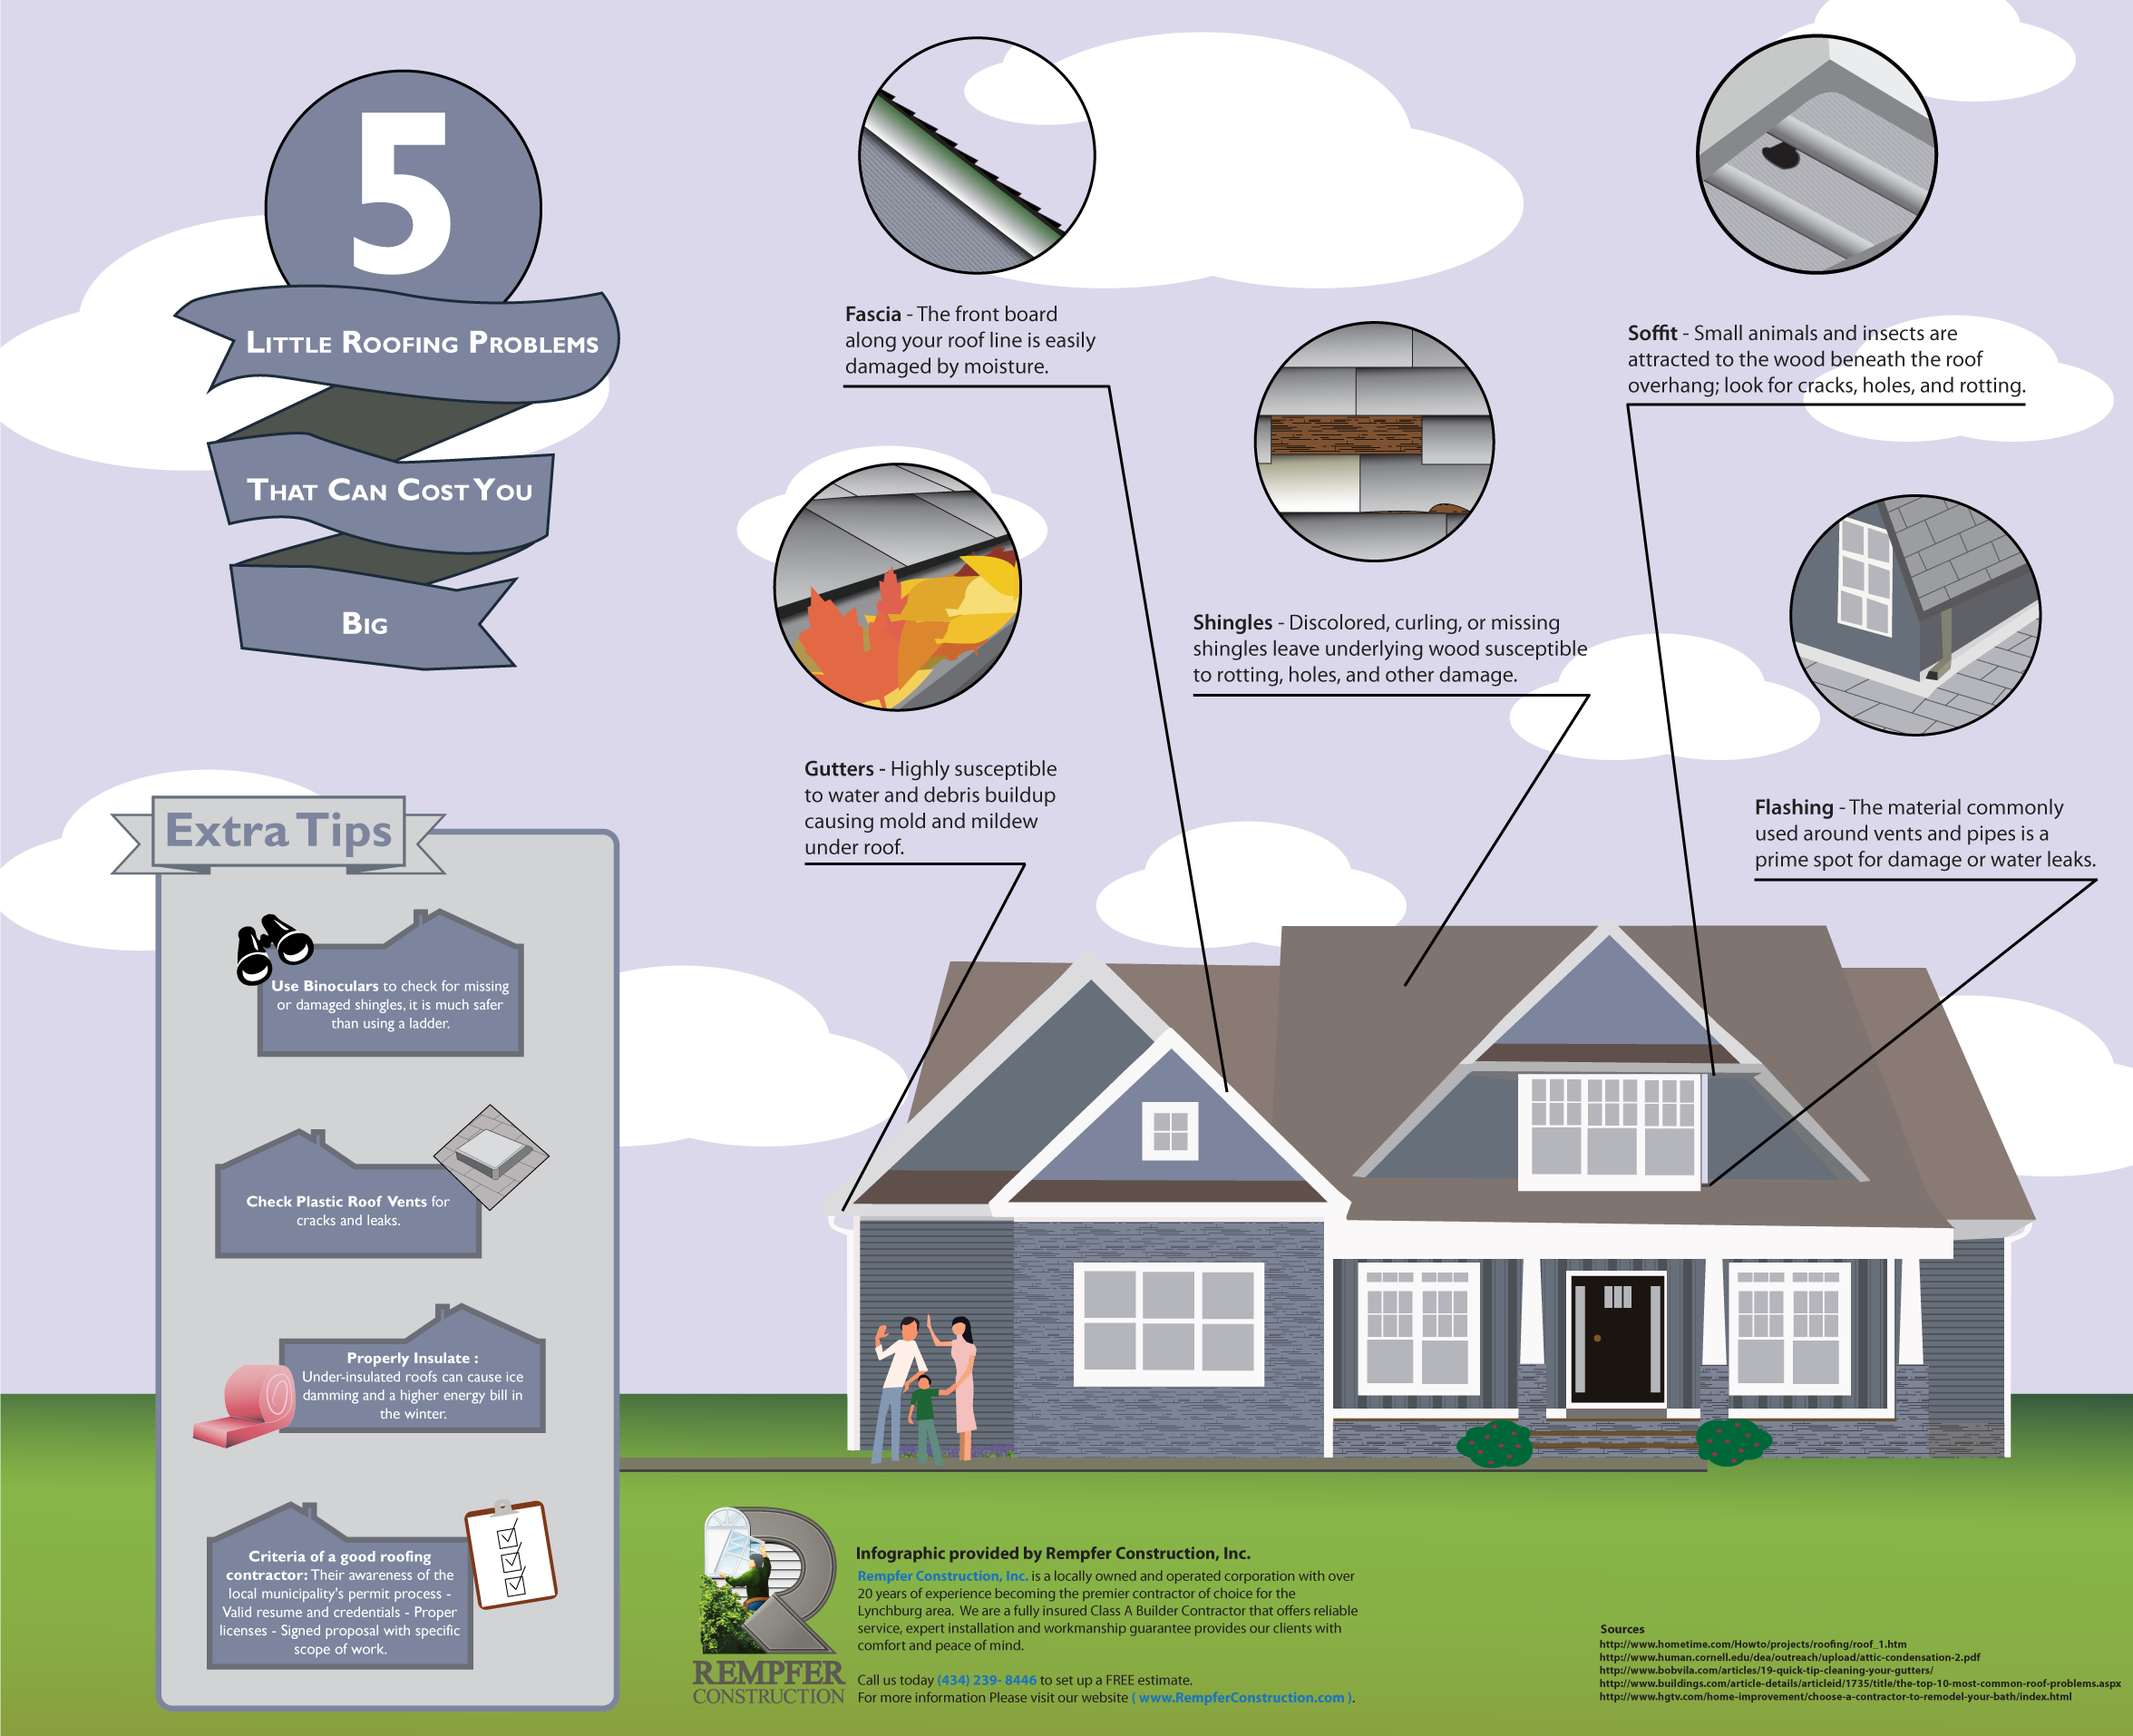 Here Are 5 Problem Areas That You Need To Watch Out For Before They Become Bigger And More Expensive To Fix Roof Problems Energy Efficient Homes Roofing